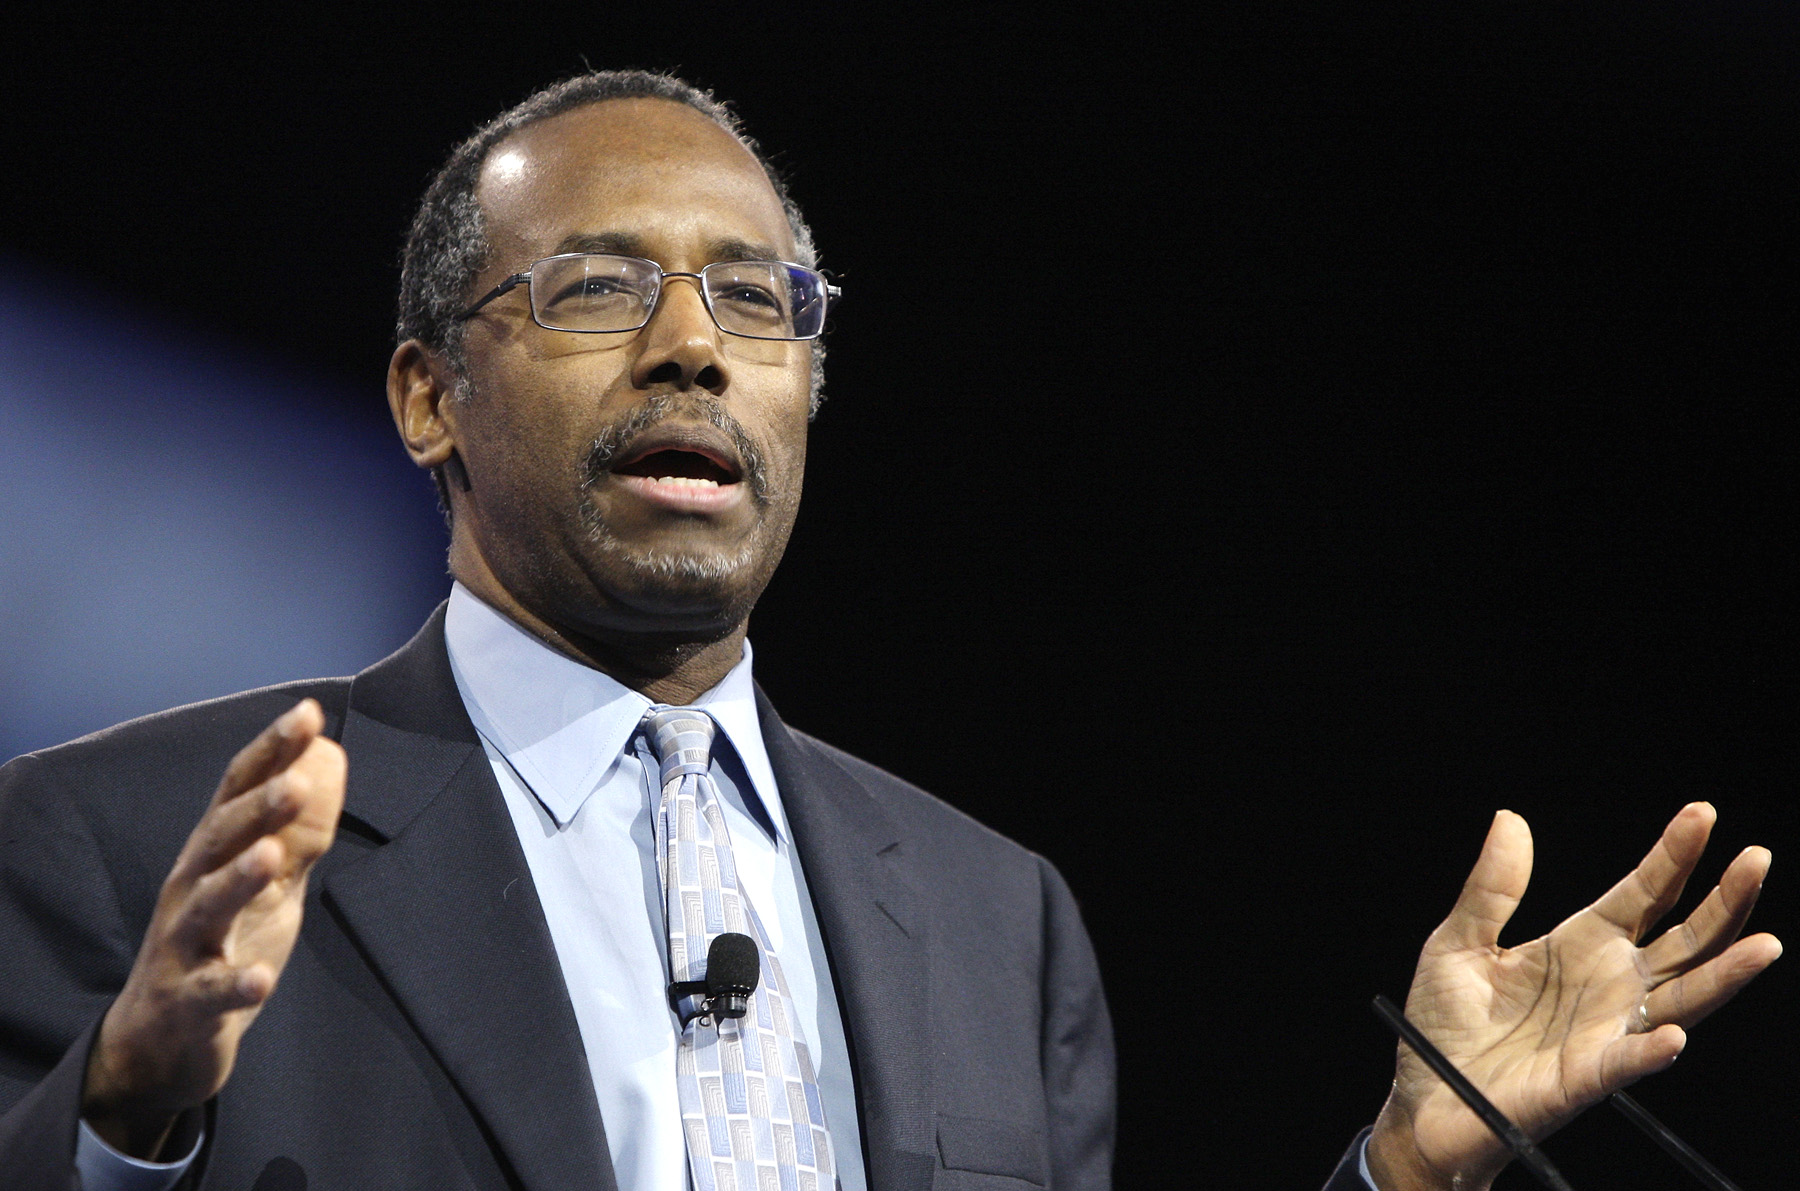 Ben Carson Says Marines Arent Ready to be Deployed Marines Say